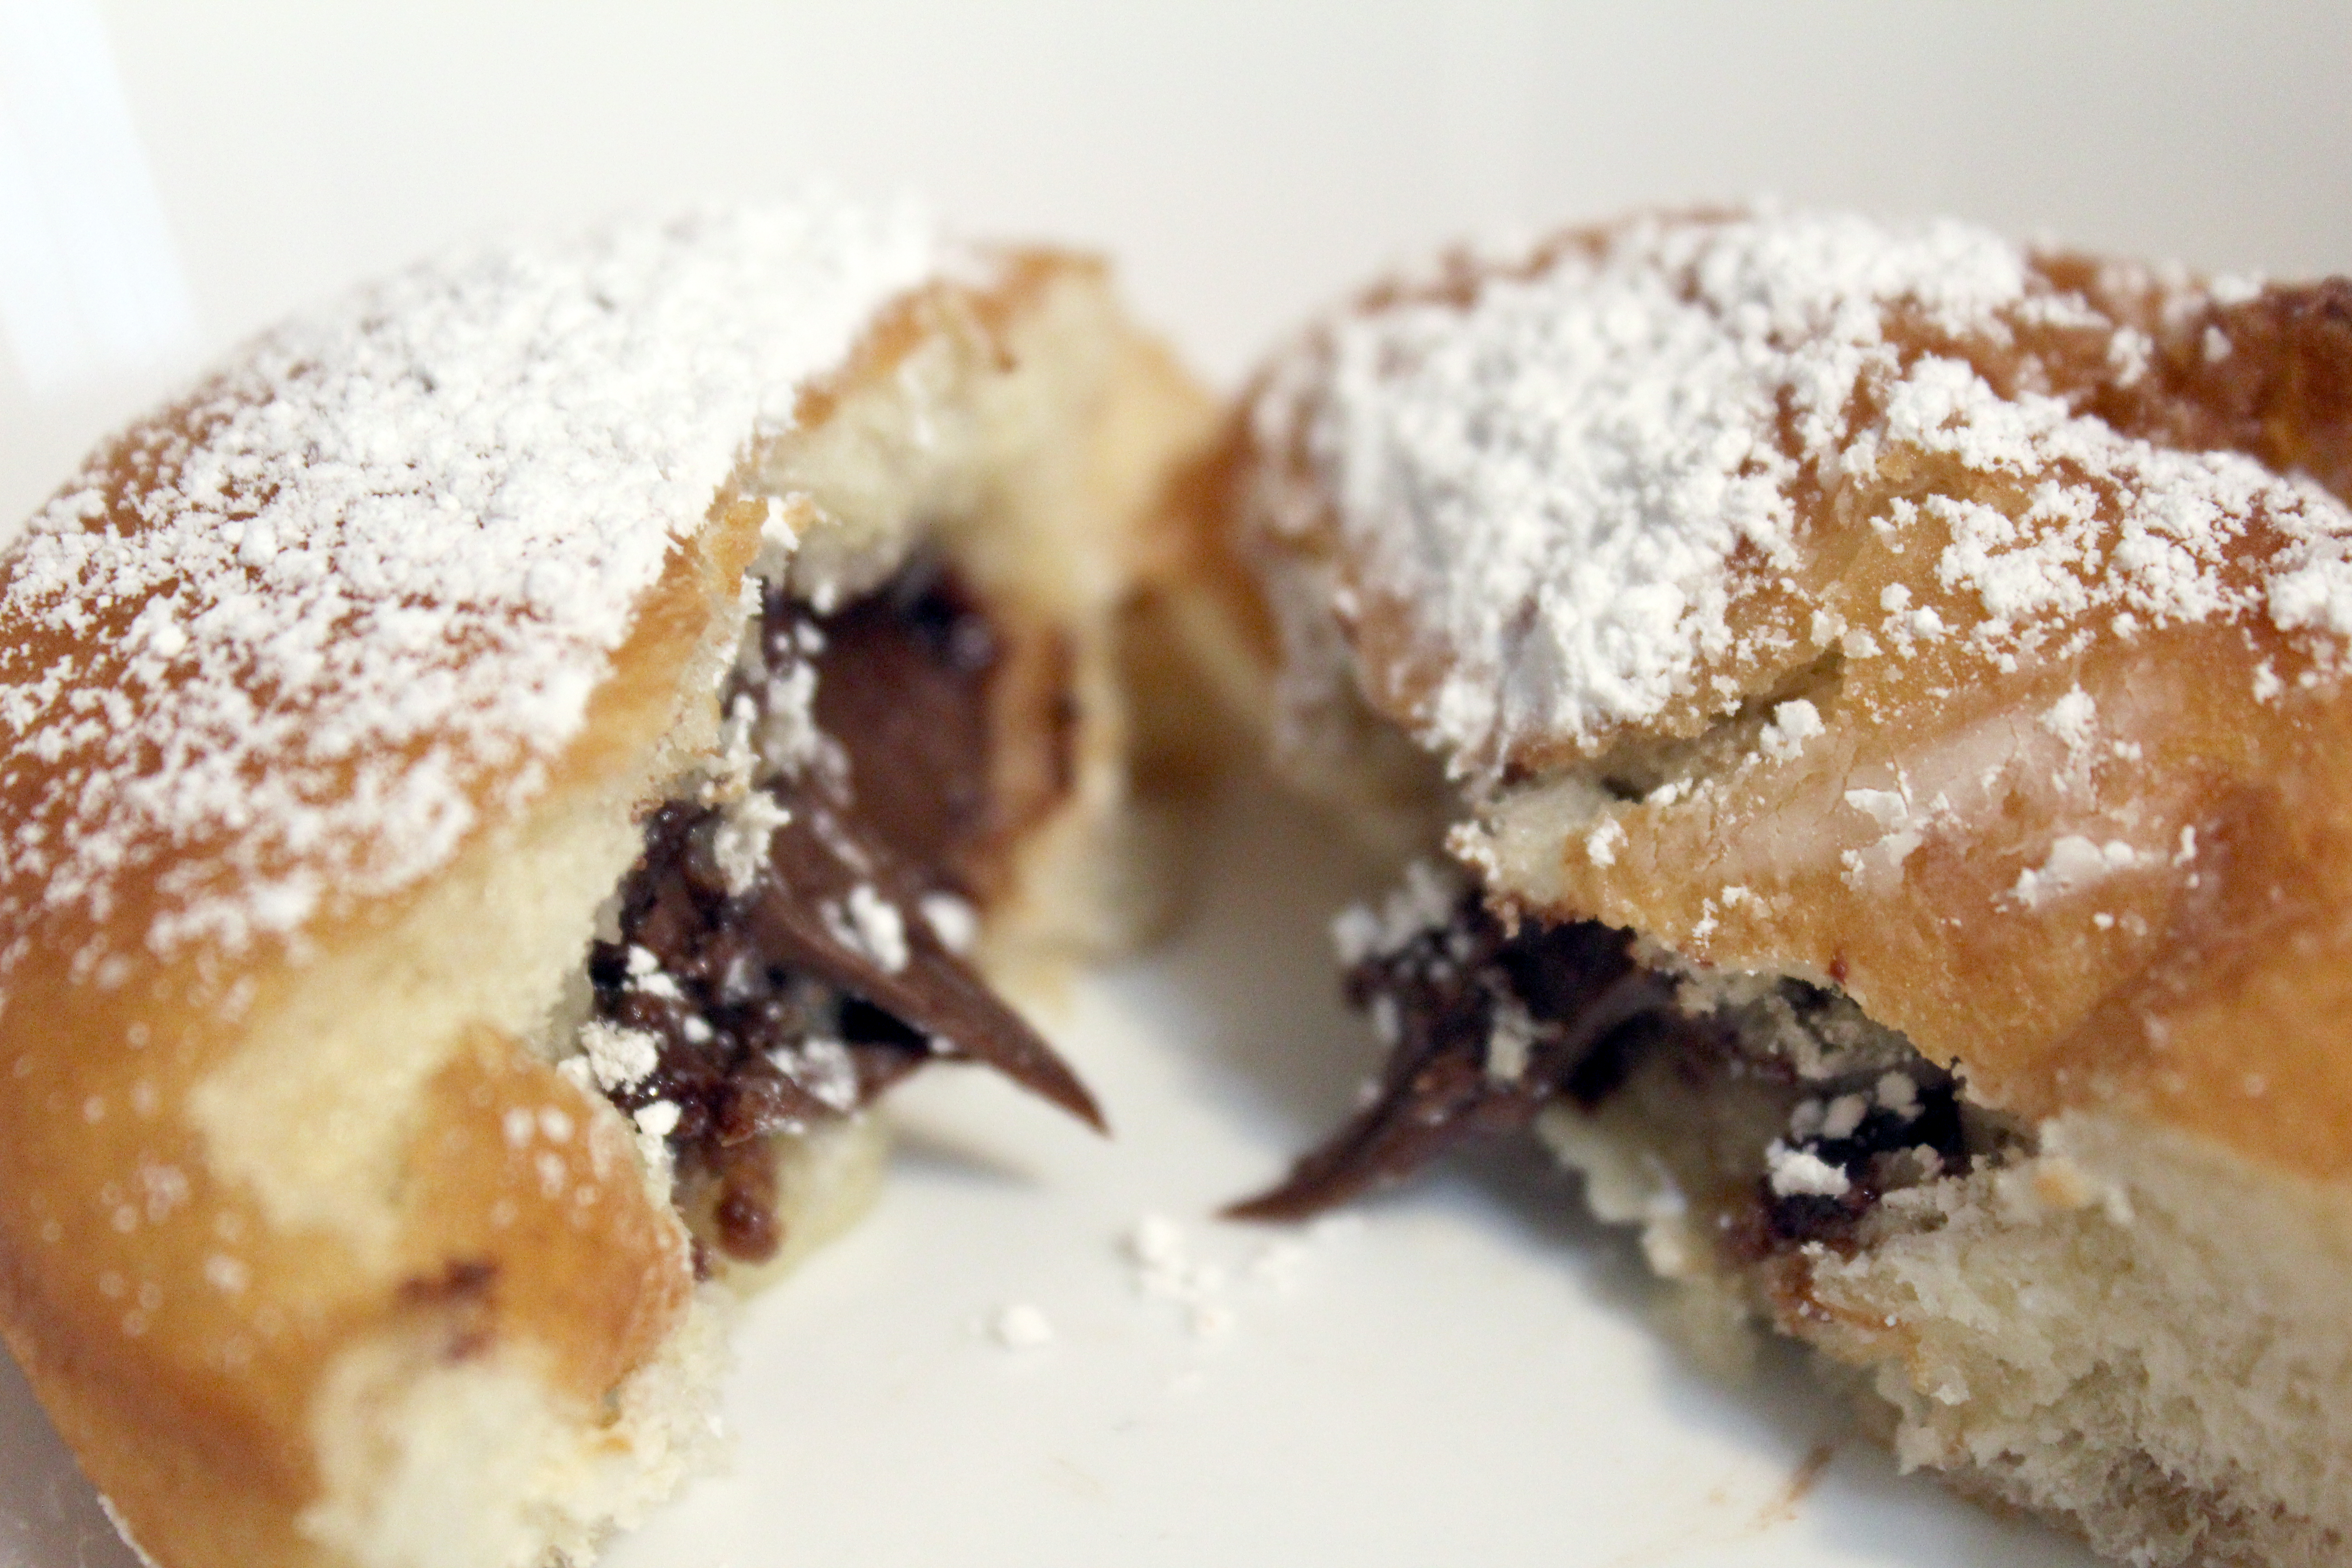 Chocolate Hazelnut Beignet